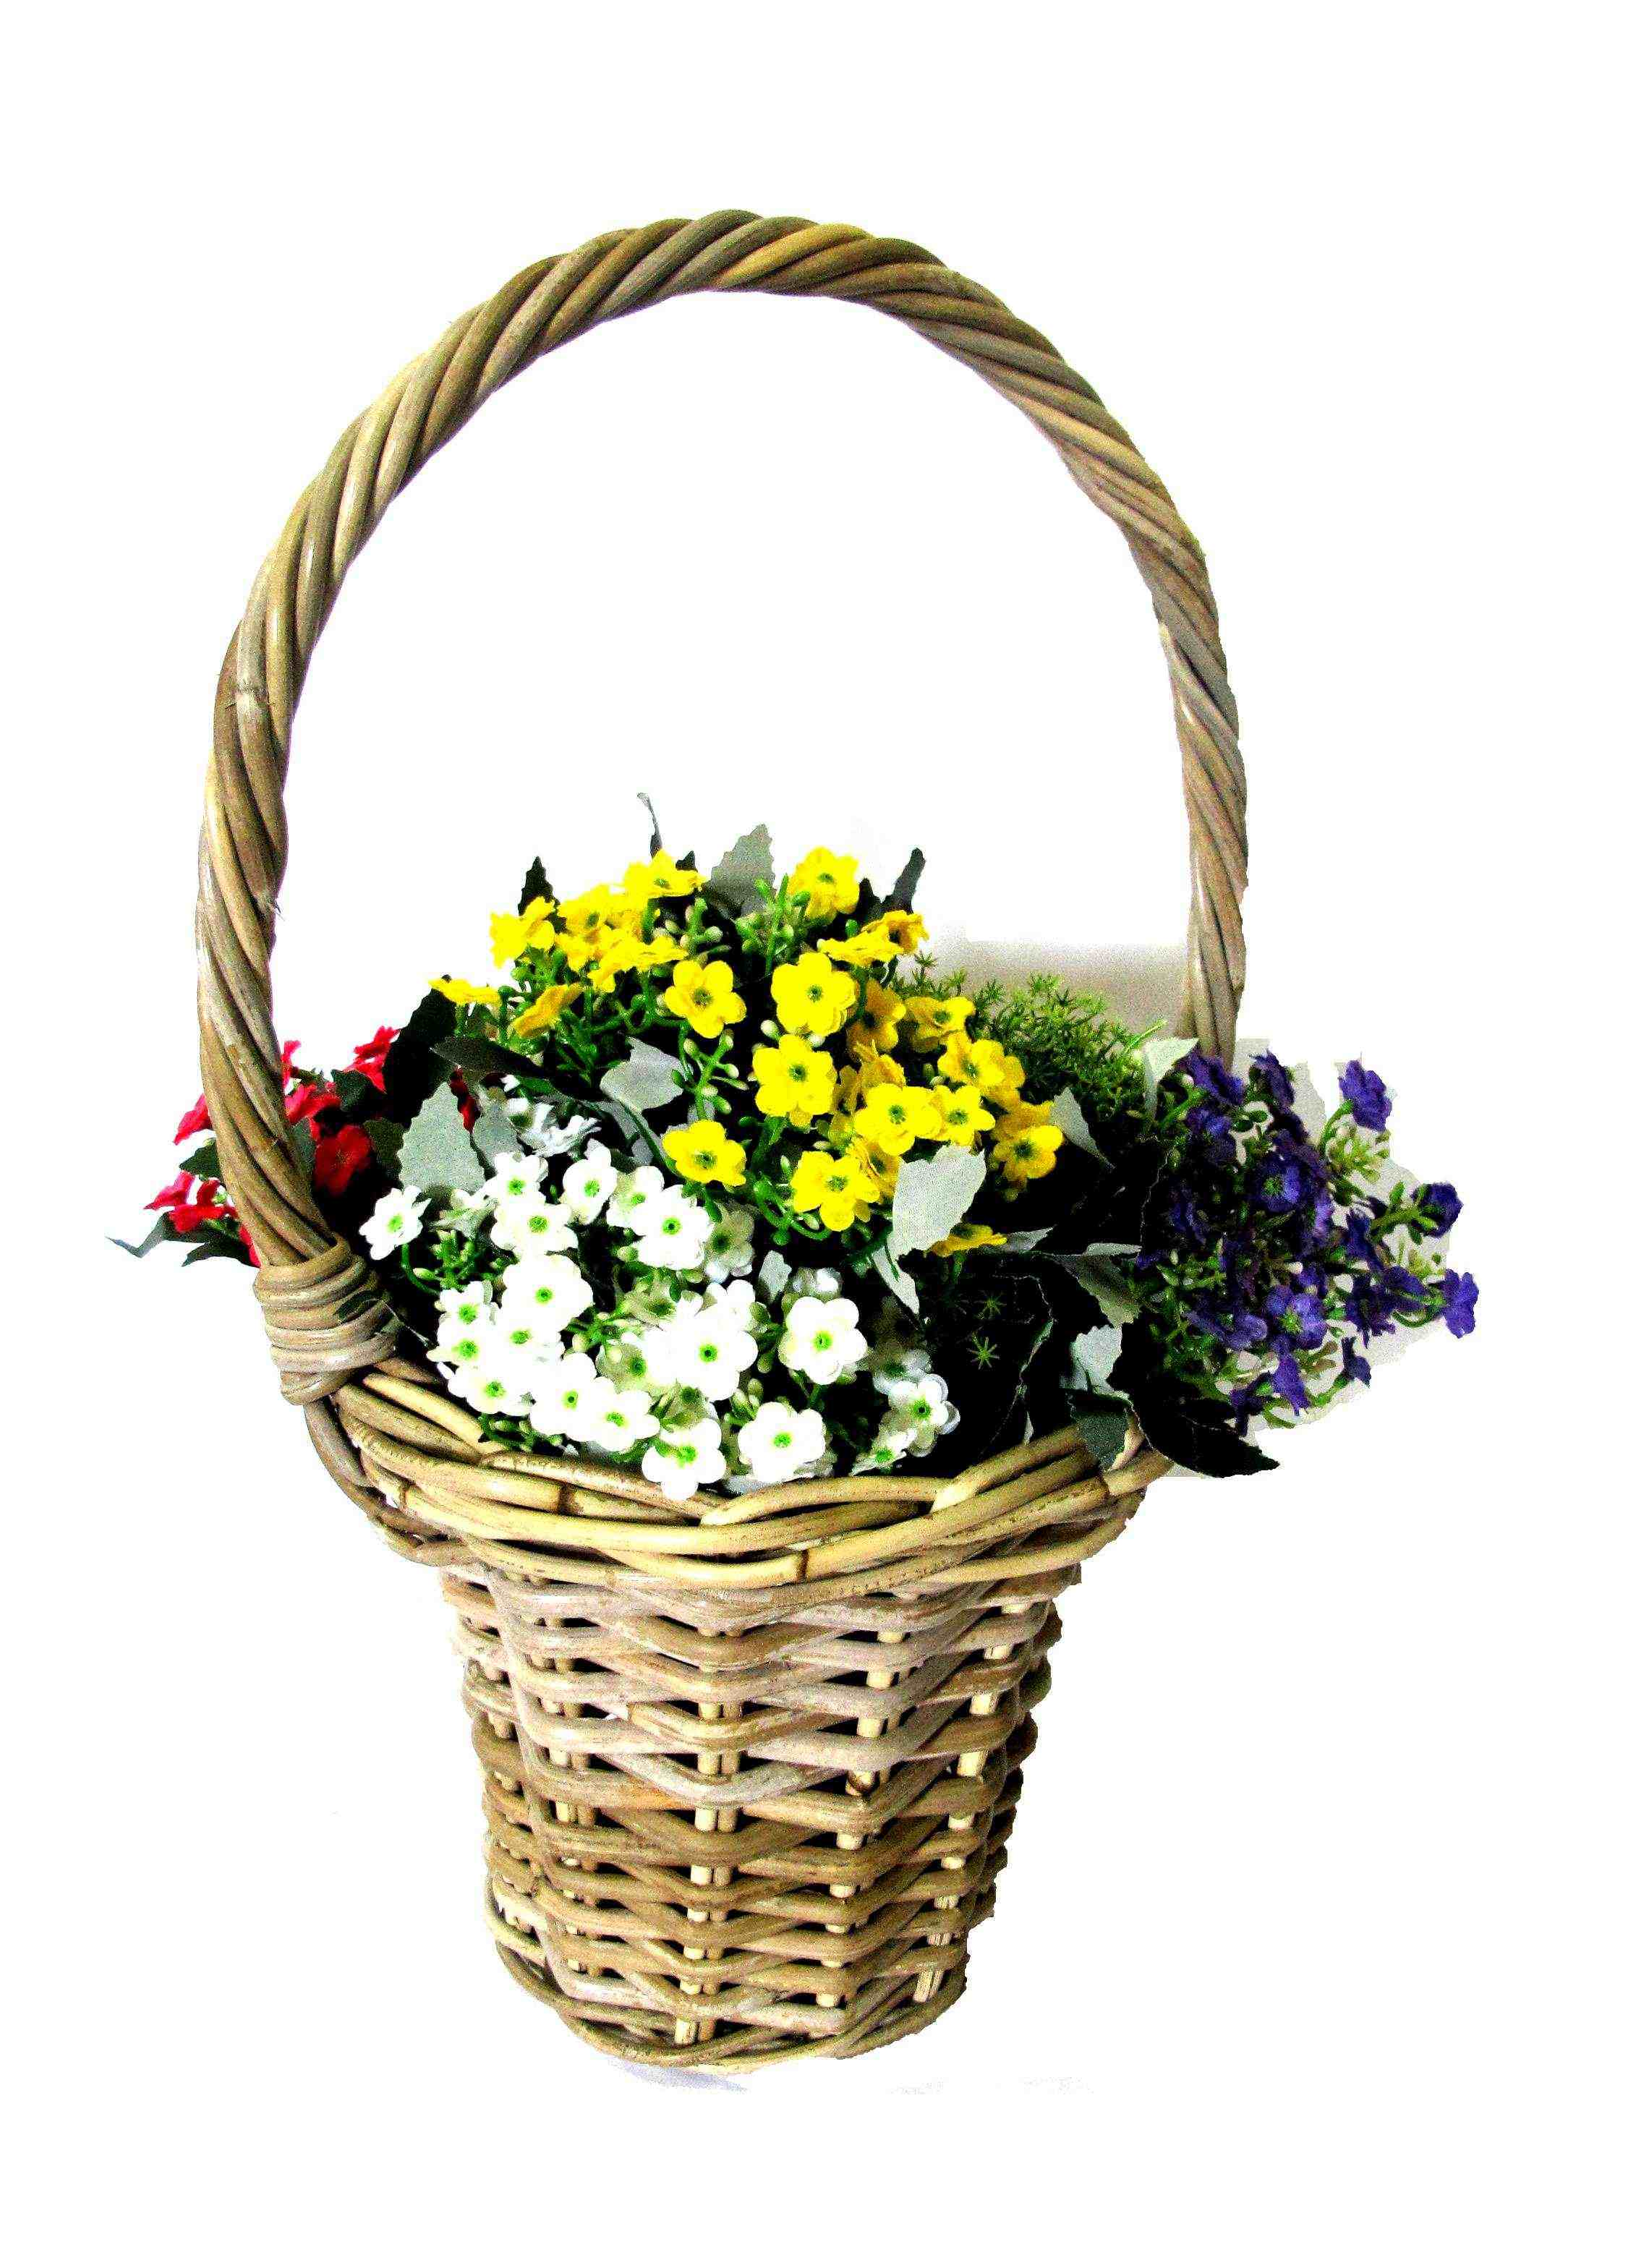 Rattan Flower Baskets : Rattan grey kubu kobo basketwares basketry